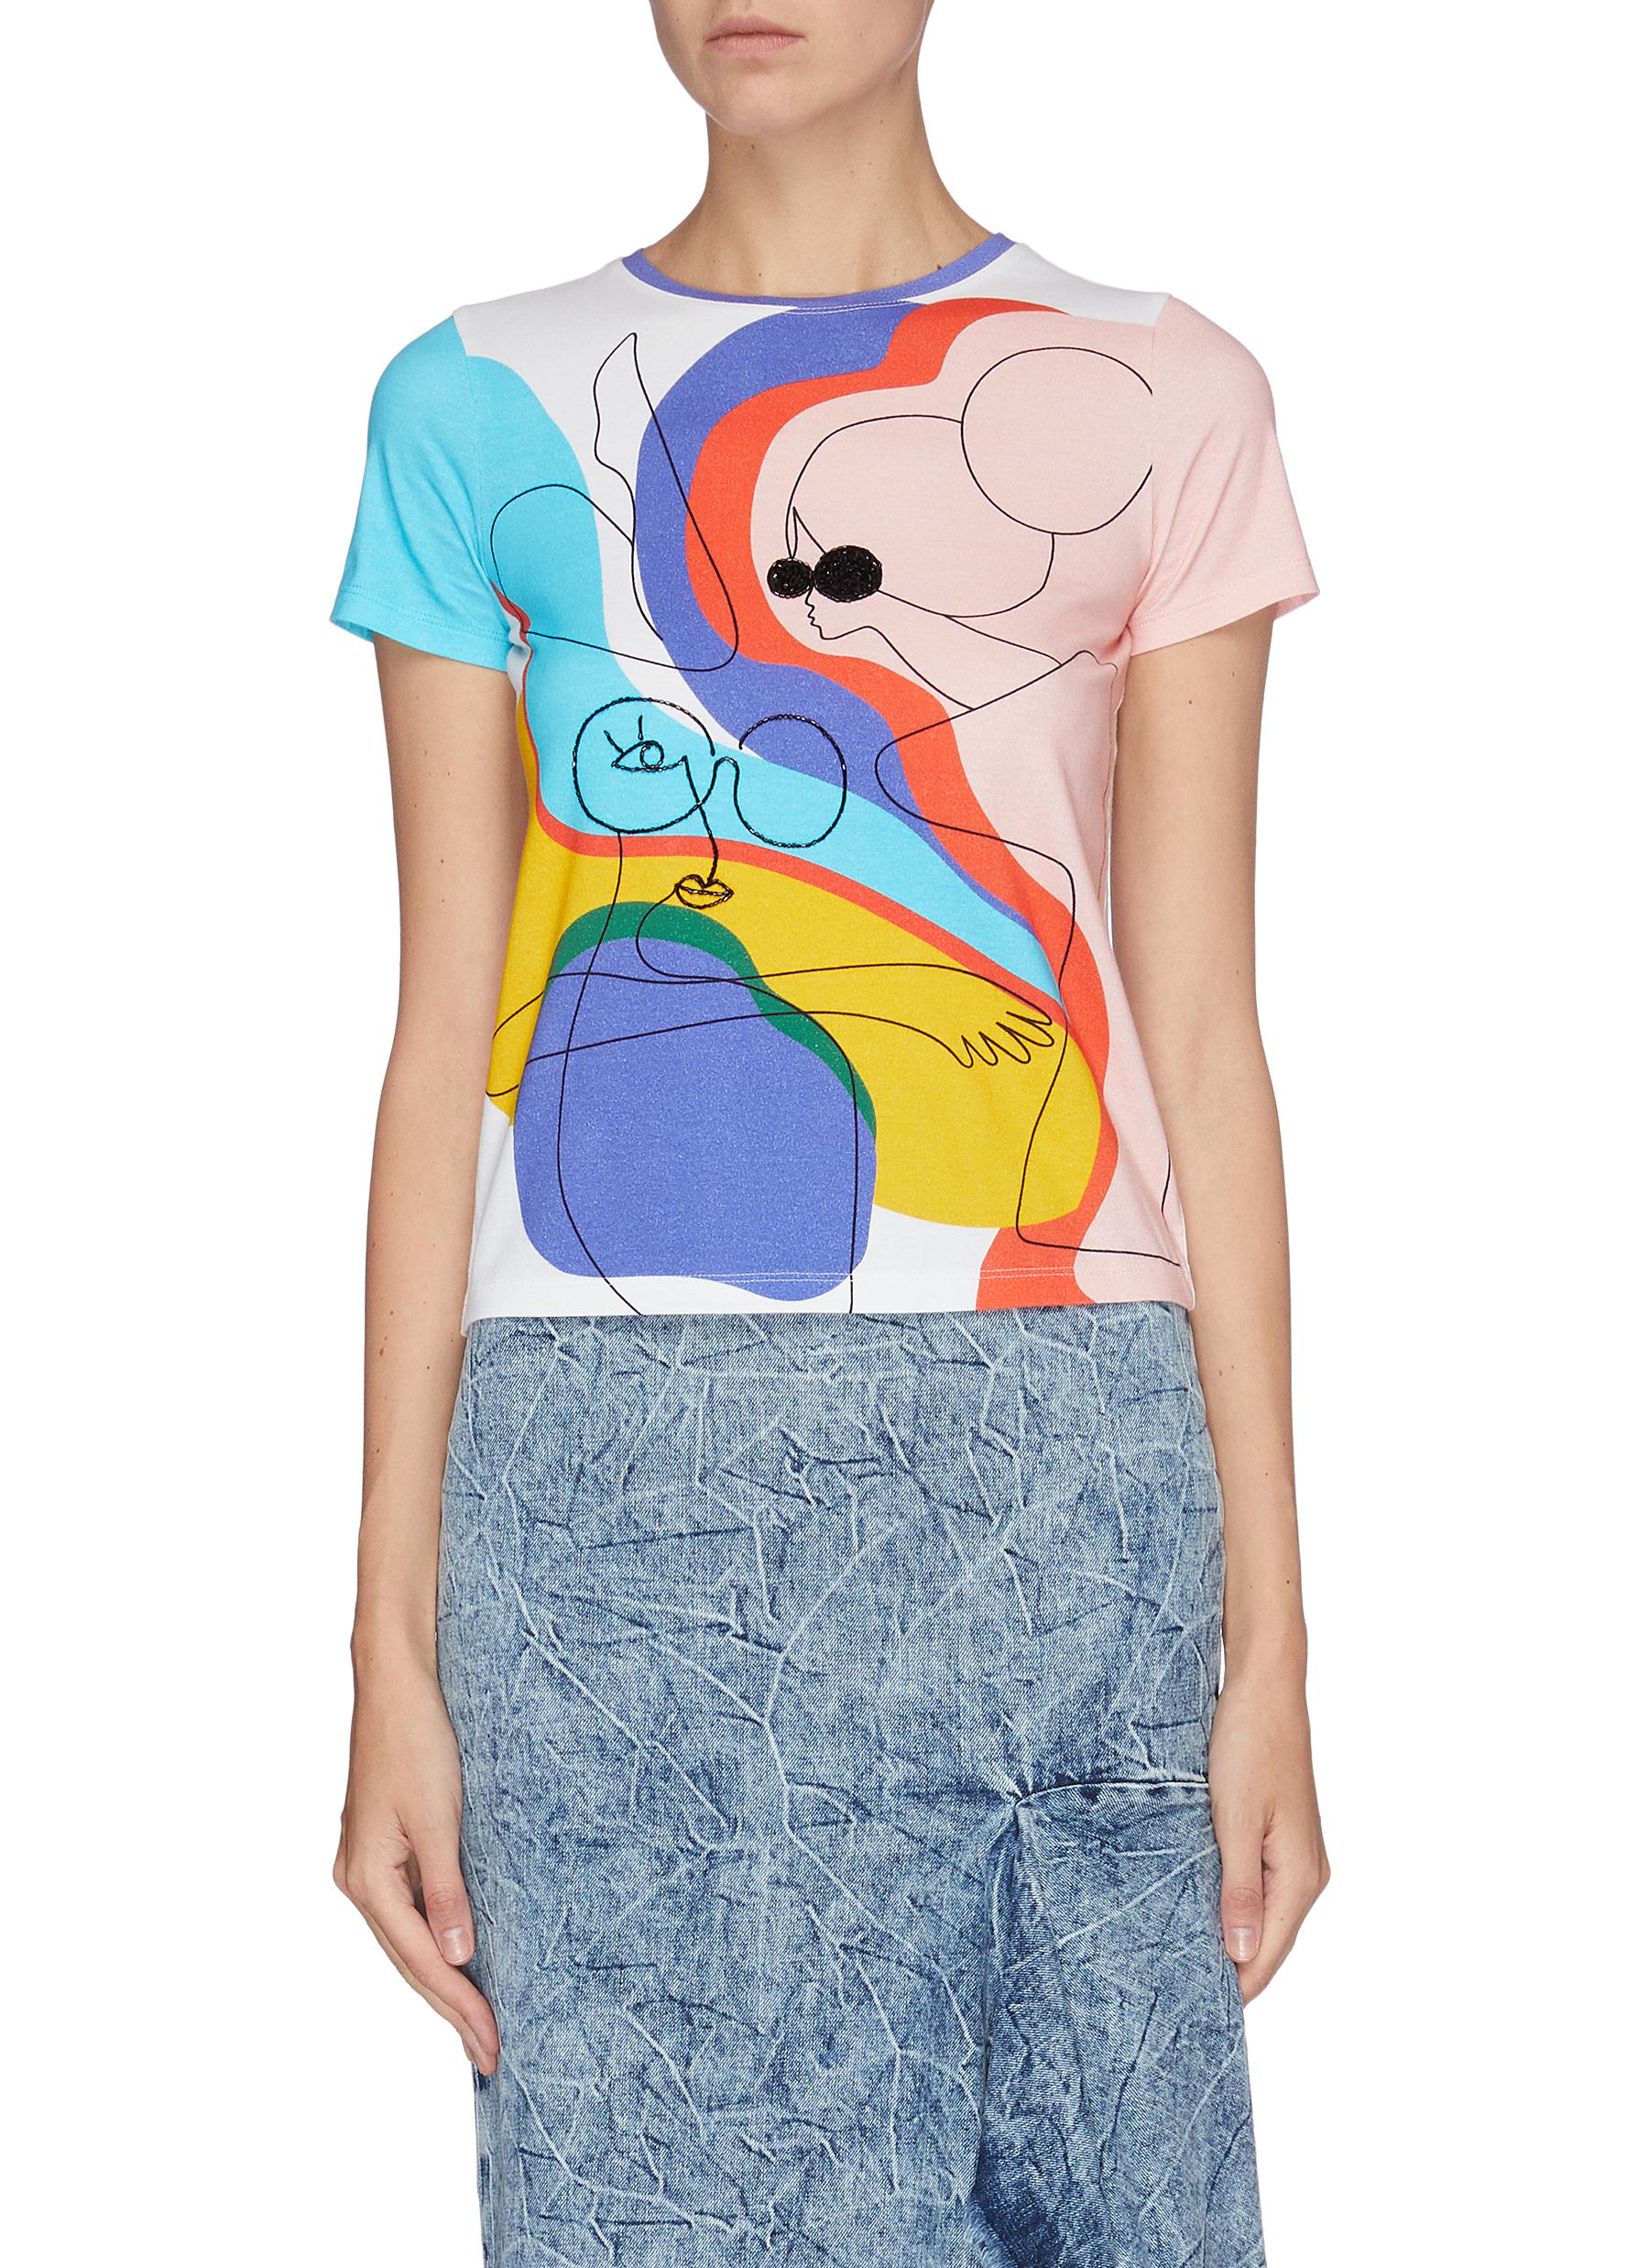 Rylyn embellished abstract print T-shirt by Alice + Olivia